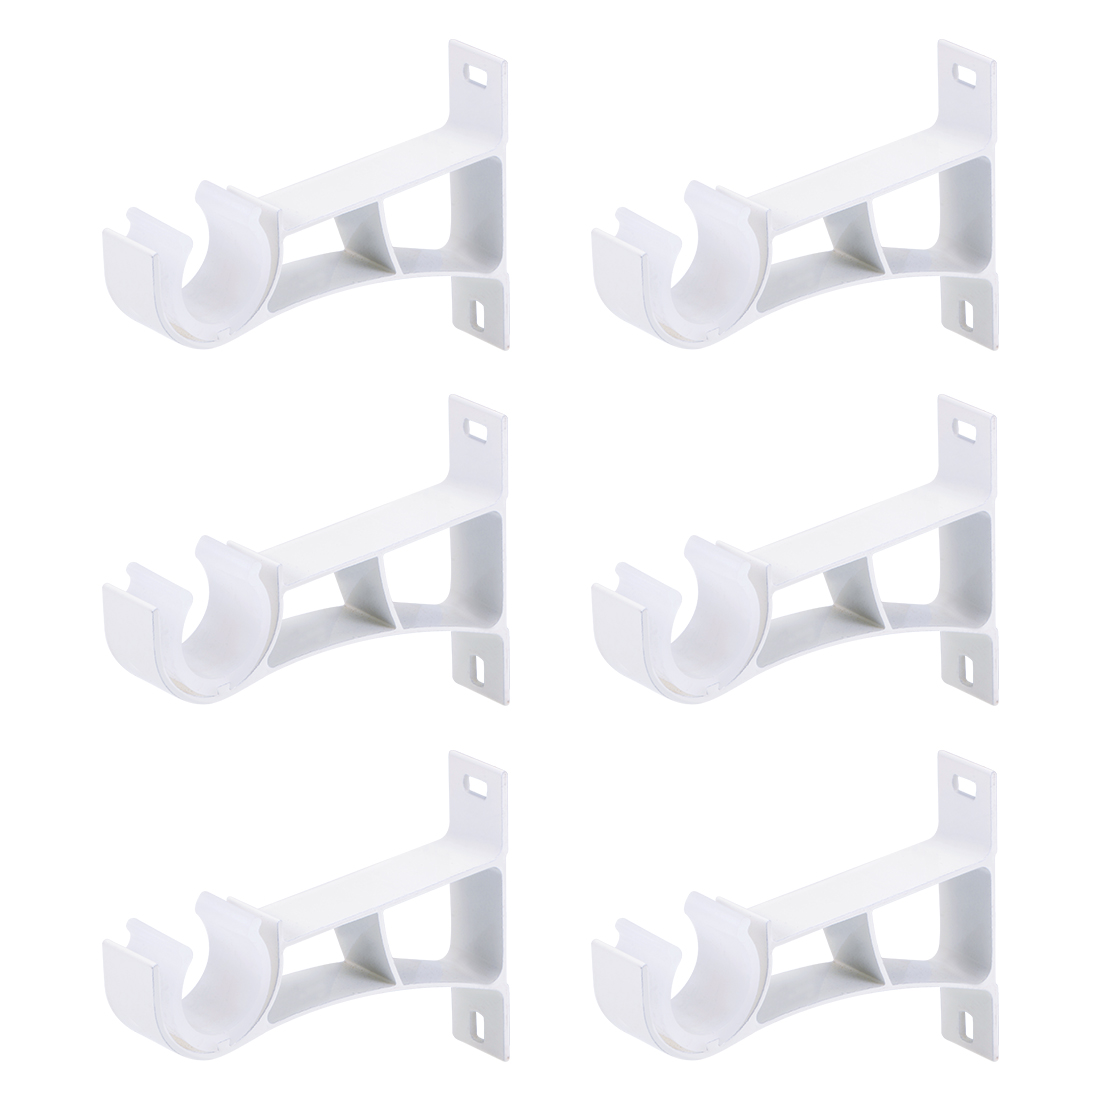 Curtain Rod Bracket Single Holder for 24mm Rod, 108 x 78 x 19mm White 6Pcs